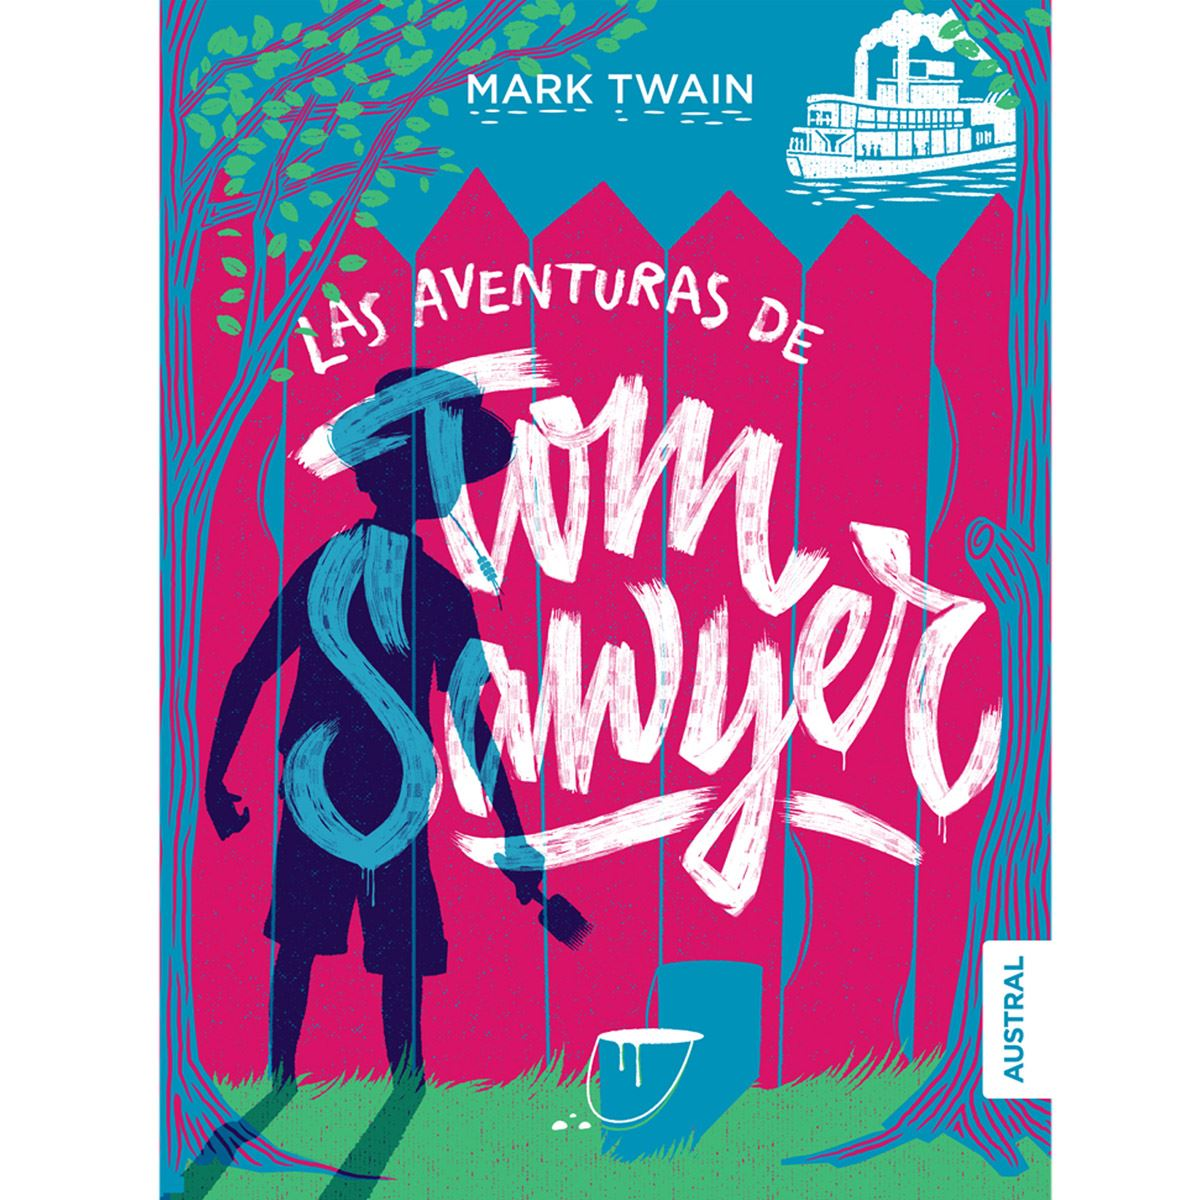 Las aventuras de tom sawyer Libro - Sanborns